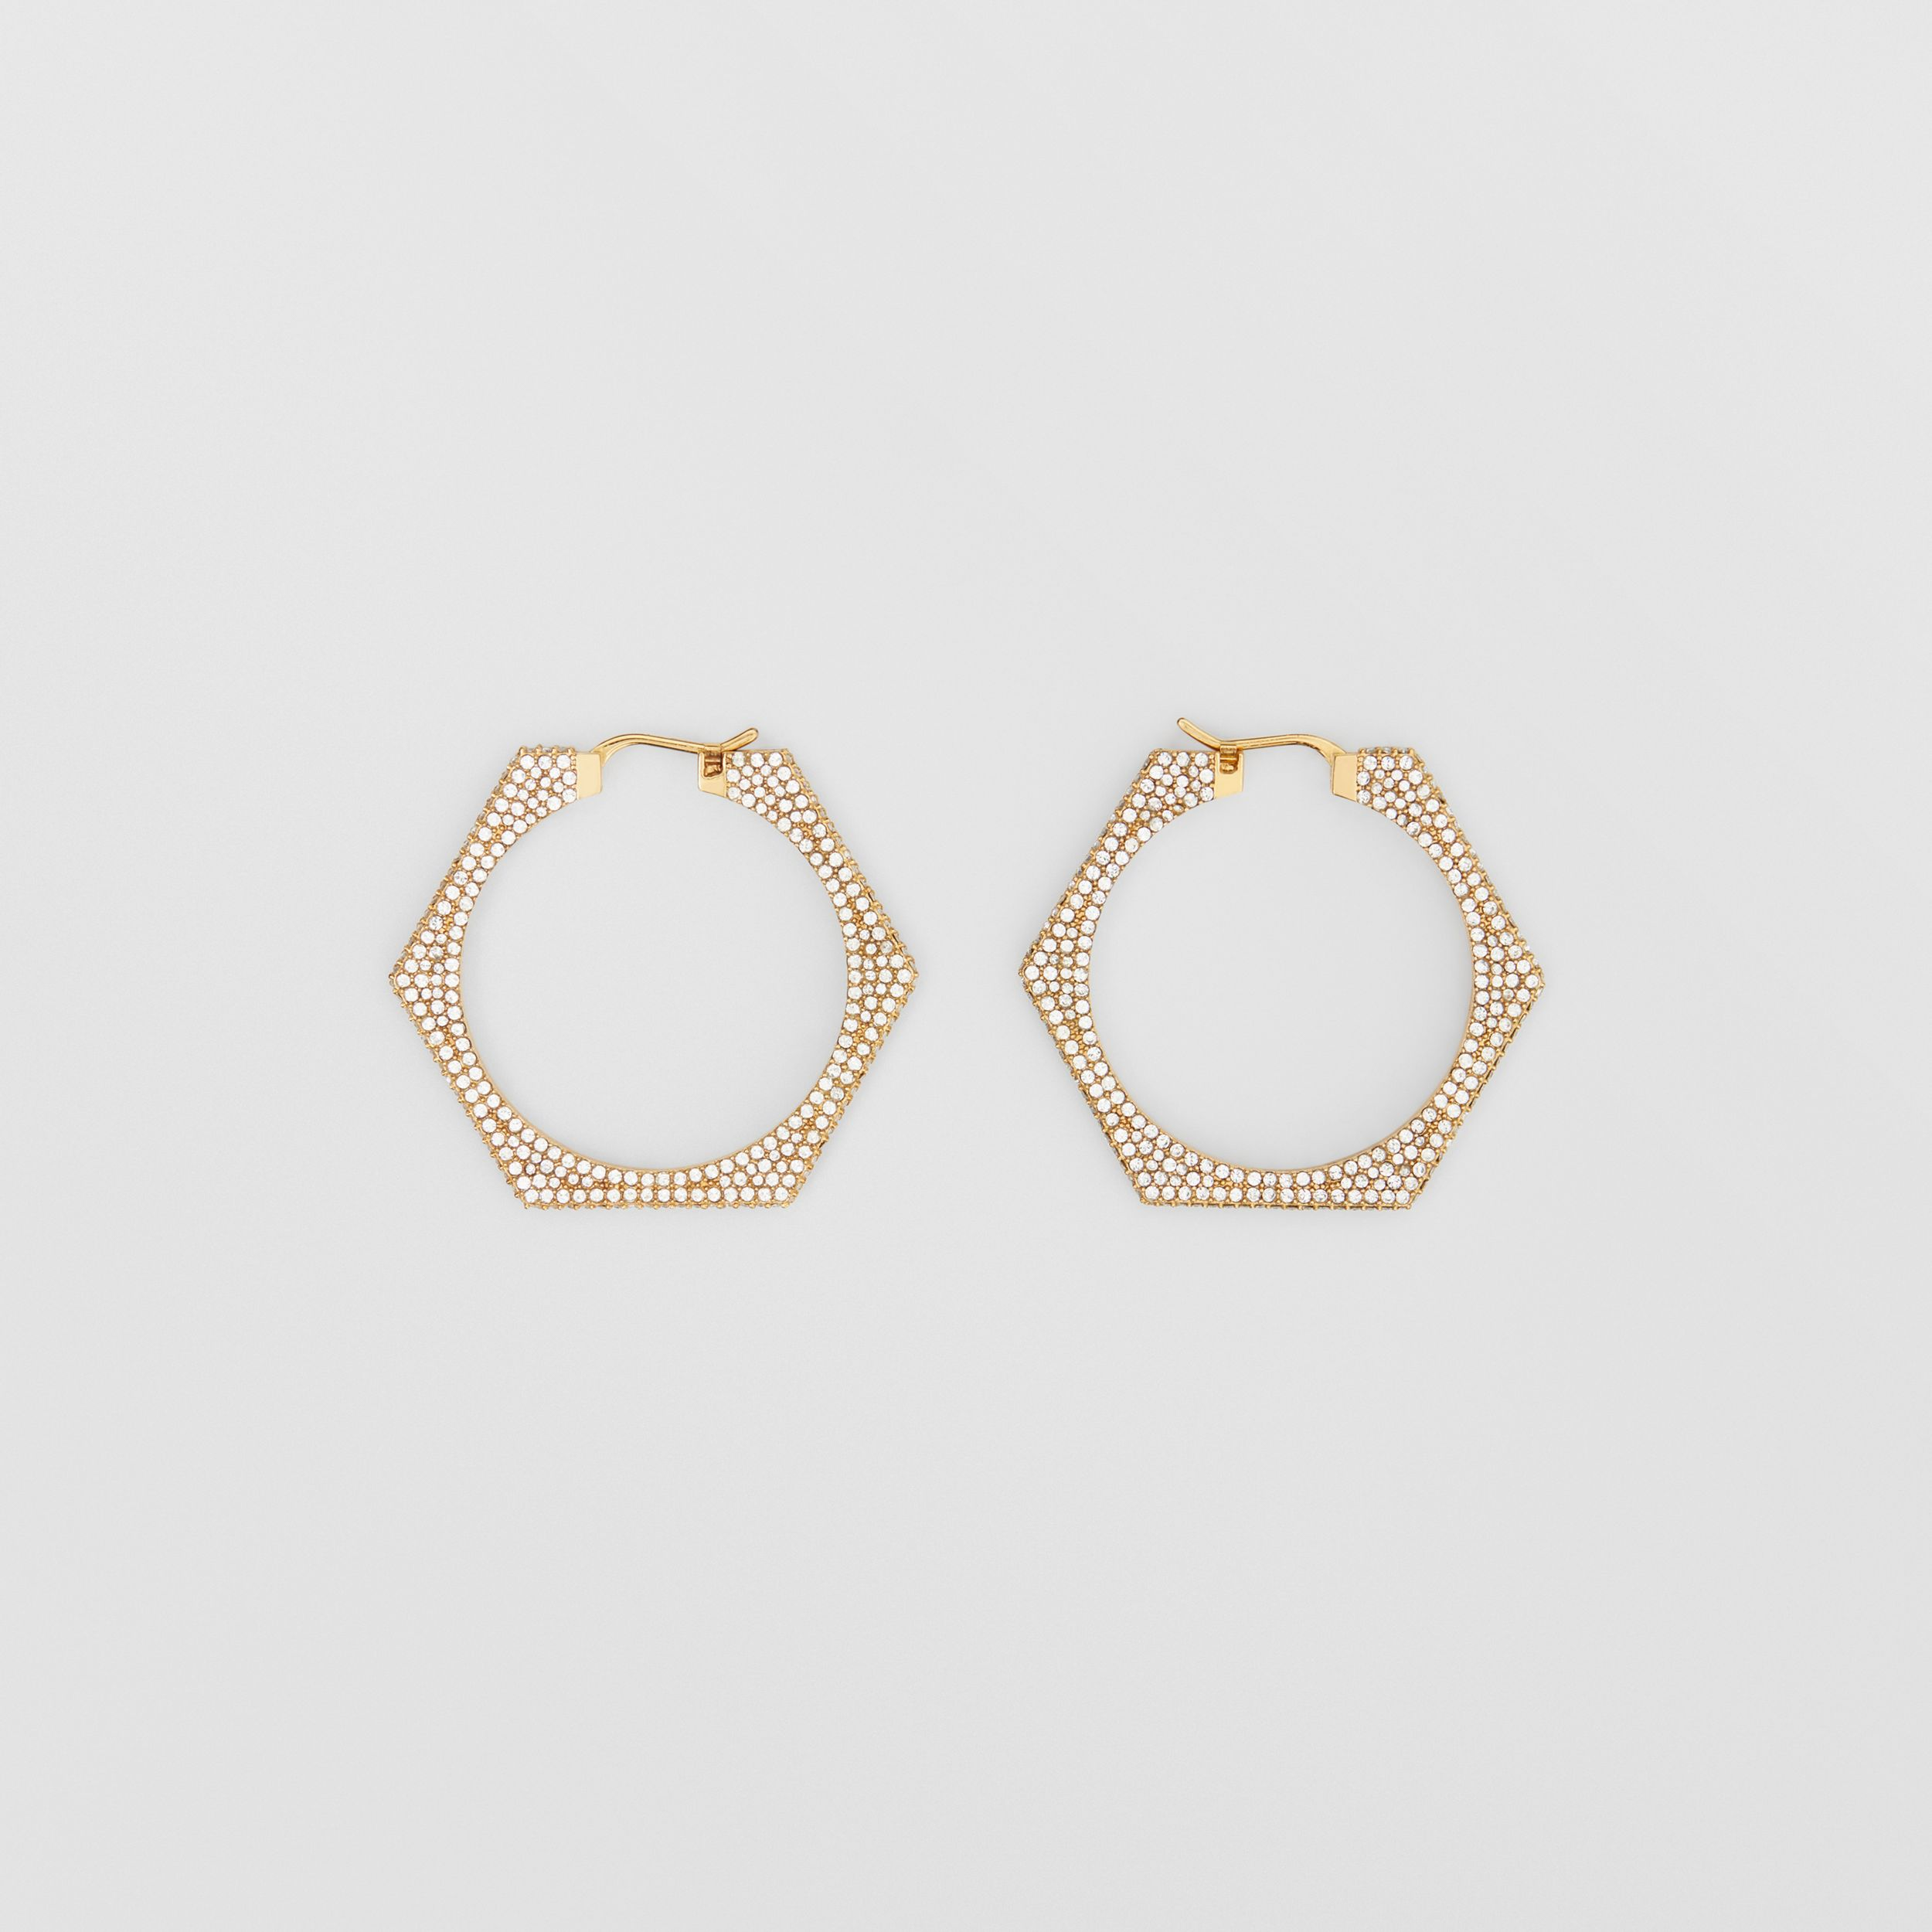 Crystal Detail Gold-plated Nut Hoop Earrings in Light Gold/crystal - Women | Burberry Singapore - 1